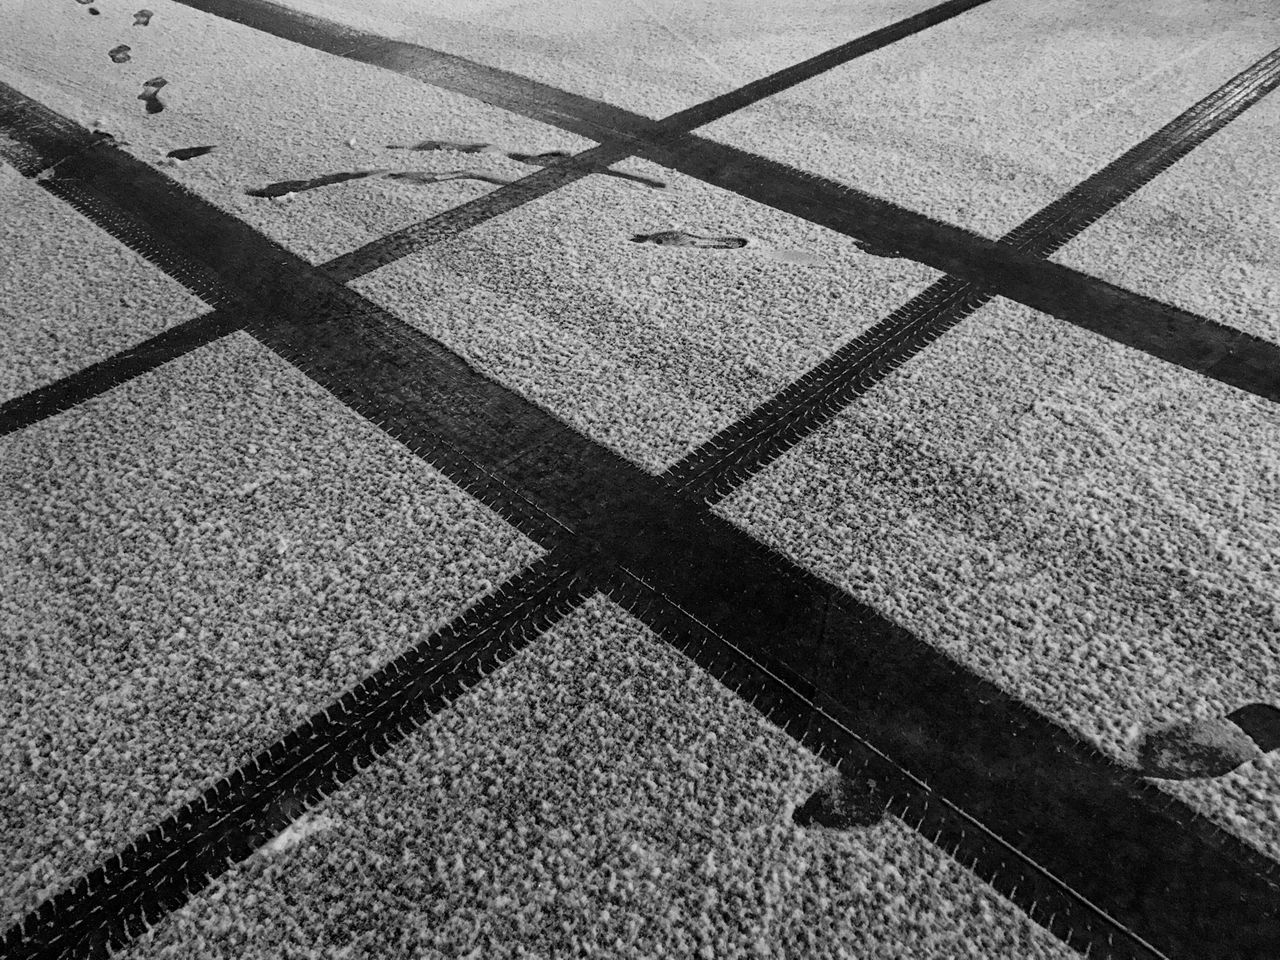 Full Frame High Angle View No People Textured  Snow Crossroads